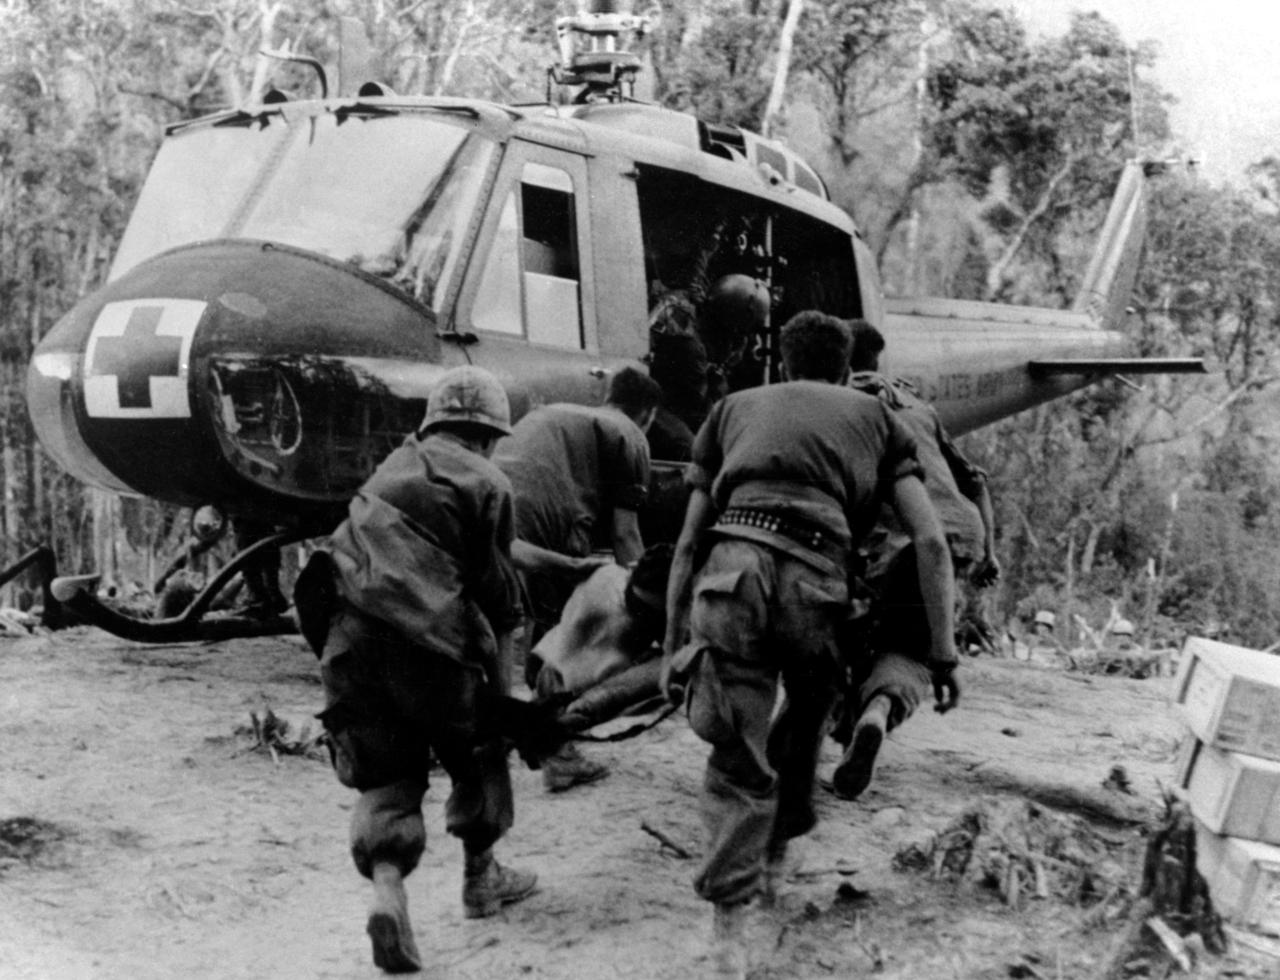 dustoff helicopter with Vietnam War on 9pv MIo1I5i additionally Huey Helicopter Vietnam likewise President Obama Award Medal Honor Vietnam Veteran Helicopter Pilot 50 Years Braved Enemy Machine Gun Fire Rescue 40 Trapped Soldiers Badly Damaged Huey likewise Iron Triangle Vietnam in addition File UH 60 arrives for medevac on outskirts of Marja 2010 02 13.